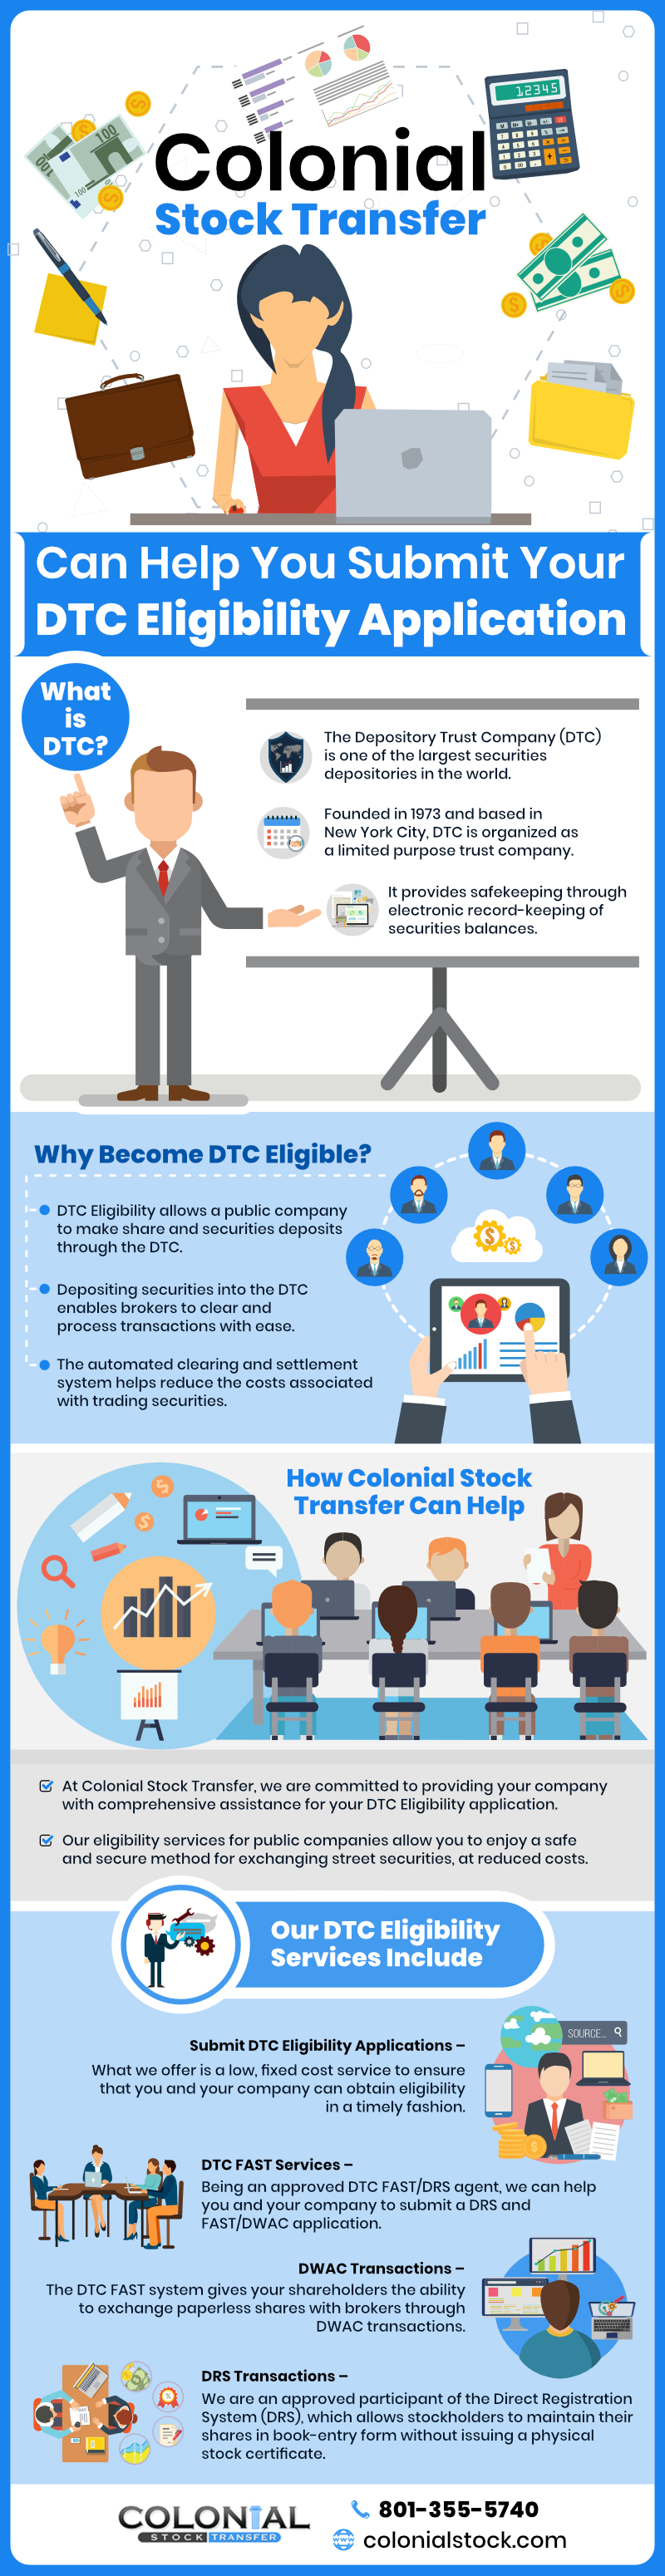 DTC Eligibility Services - Colonial Stock Transfer